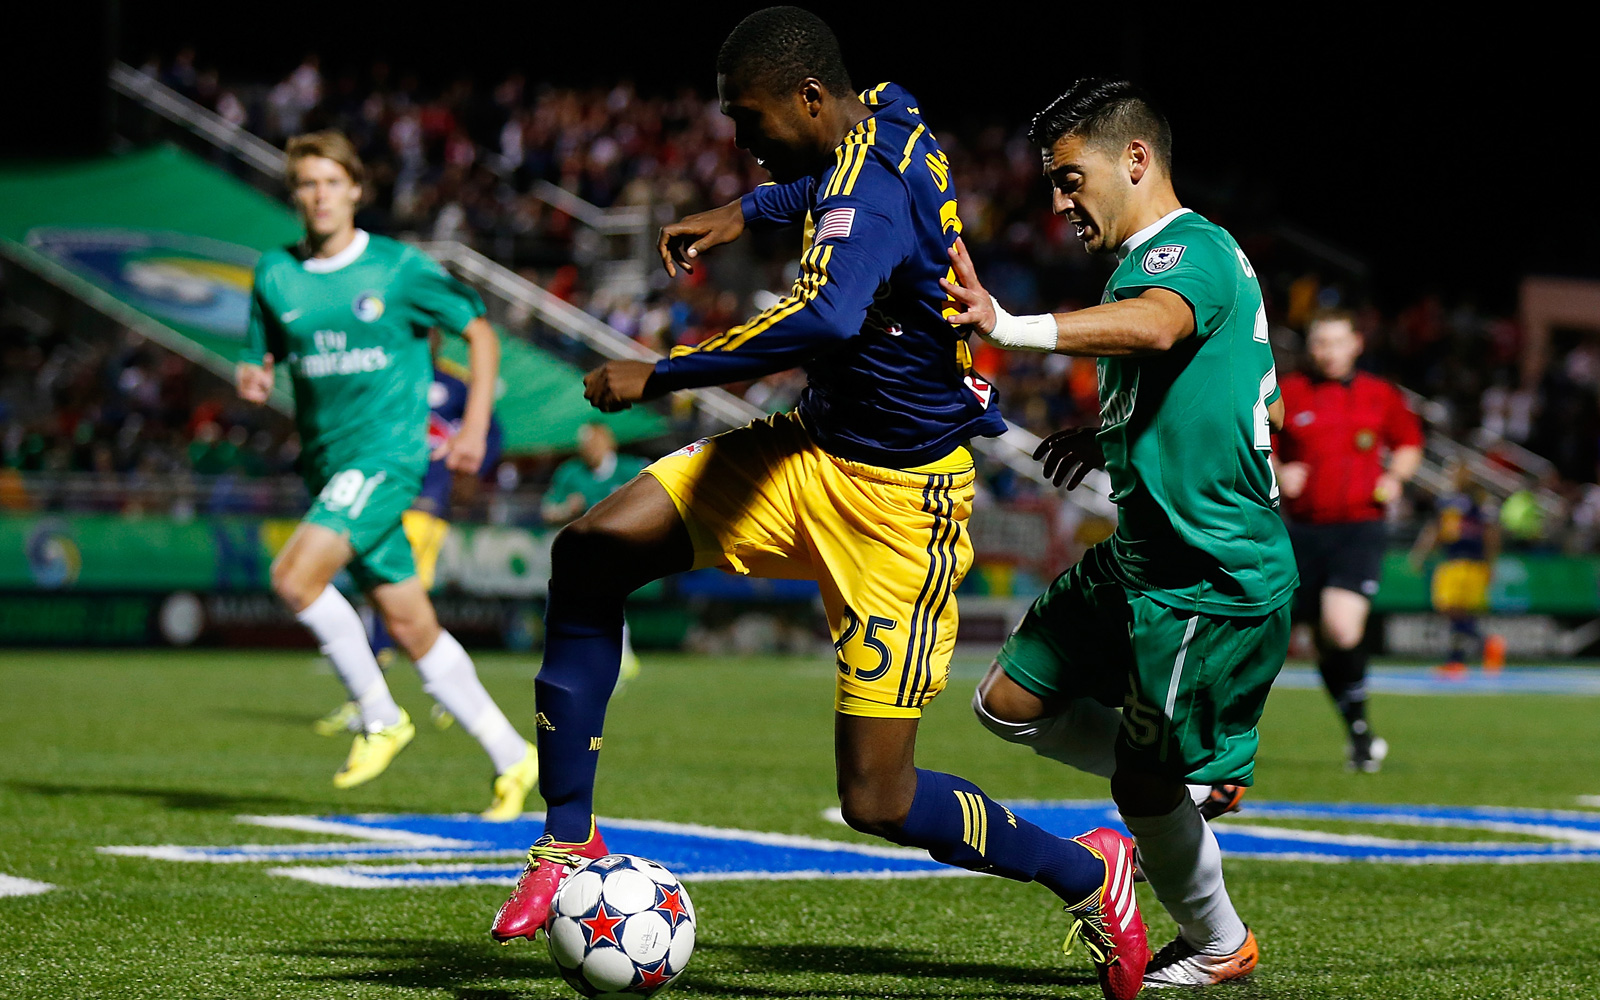 New York Red Bulls' Chris Duvall (25) takes on the Cosmos' Hagop Chirishian in their 2014 U.S. Open Cup clash.